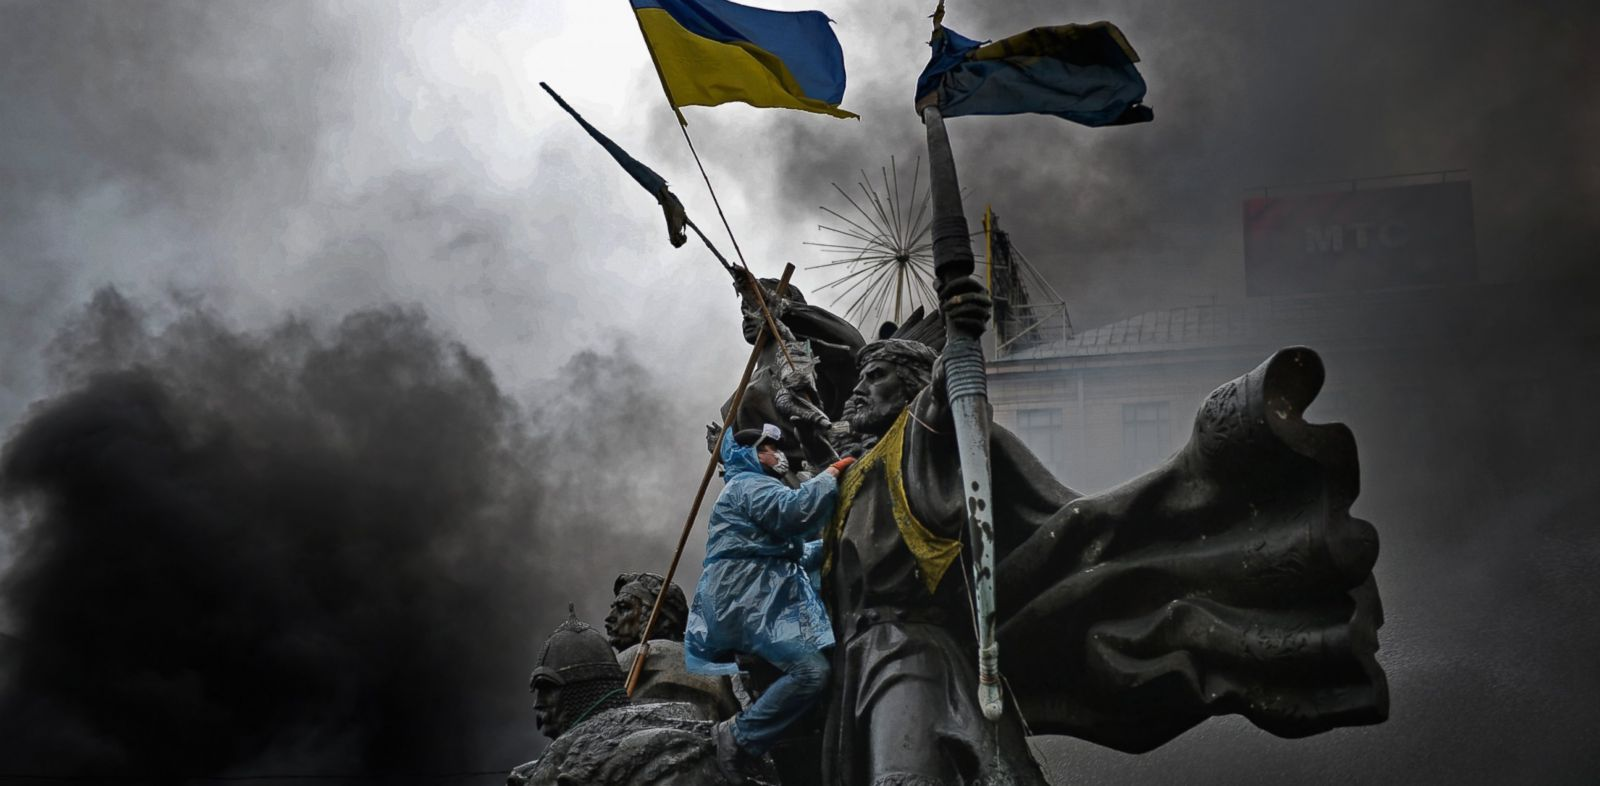 PHOTO: Anti-government protesters, continue to clash with police in Independence square, despite a truce agreed between the Ukrainian president and opposition leaders, Feb. 20, 2014 in Kiev, Ukraine.